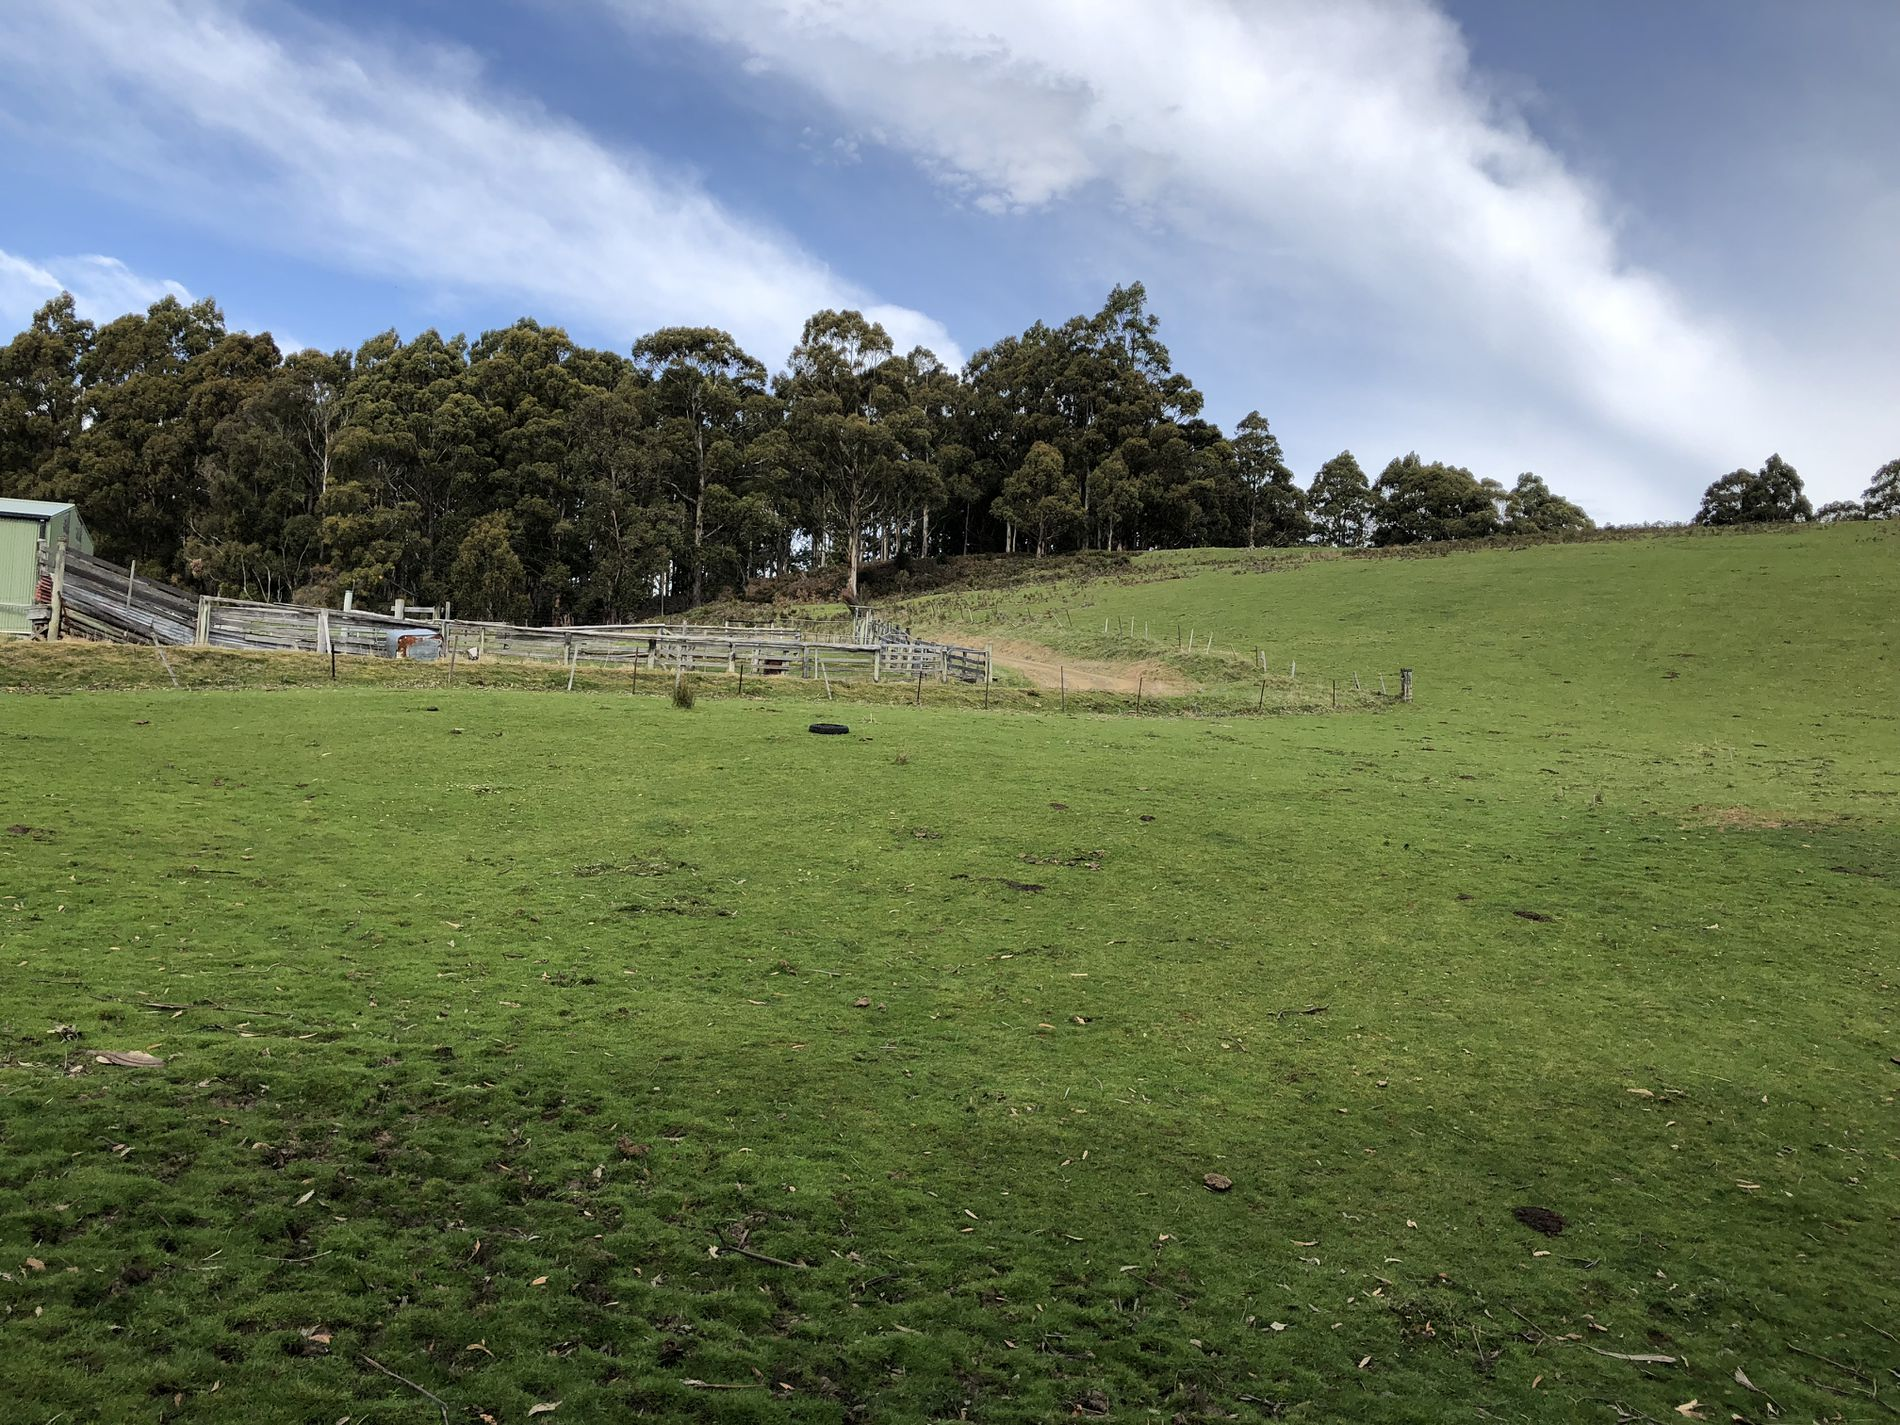 Lot 176545/3, Lightwood Creek Road, Glen Huon